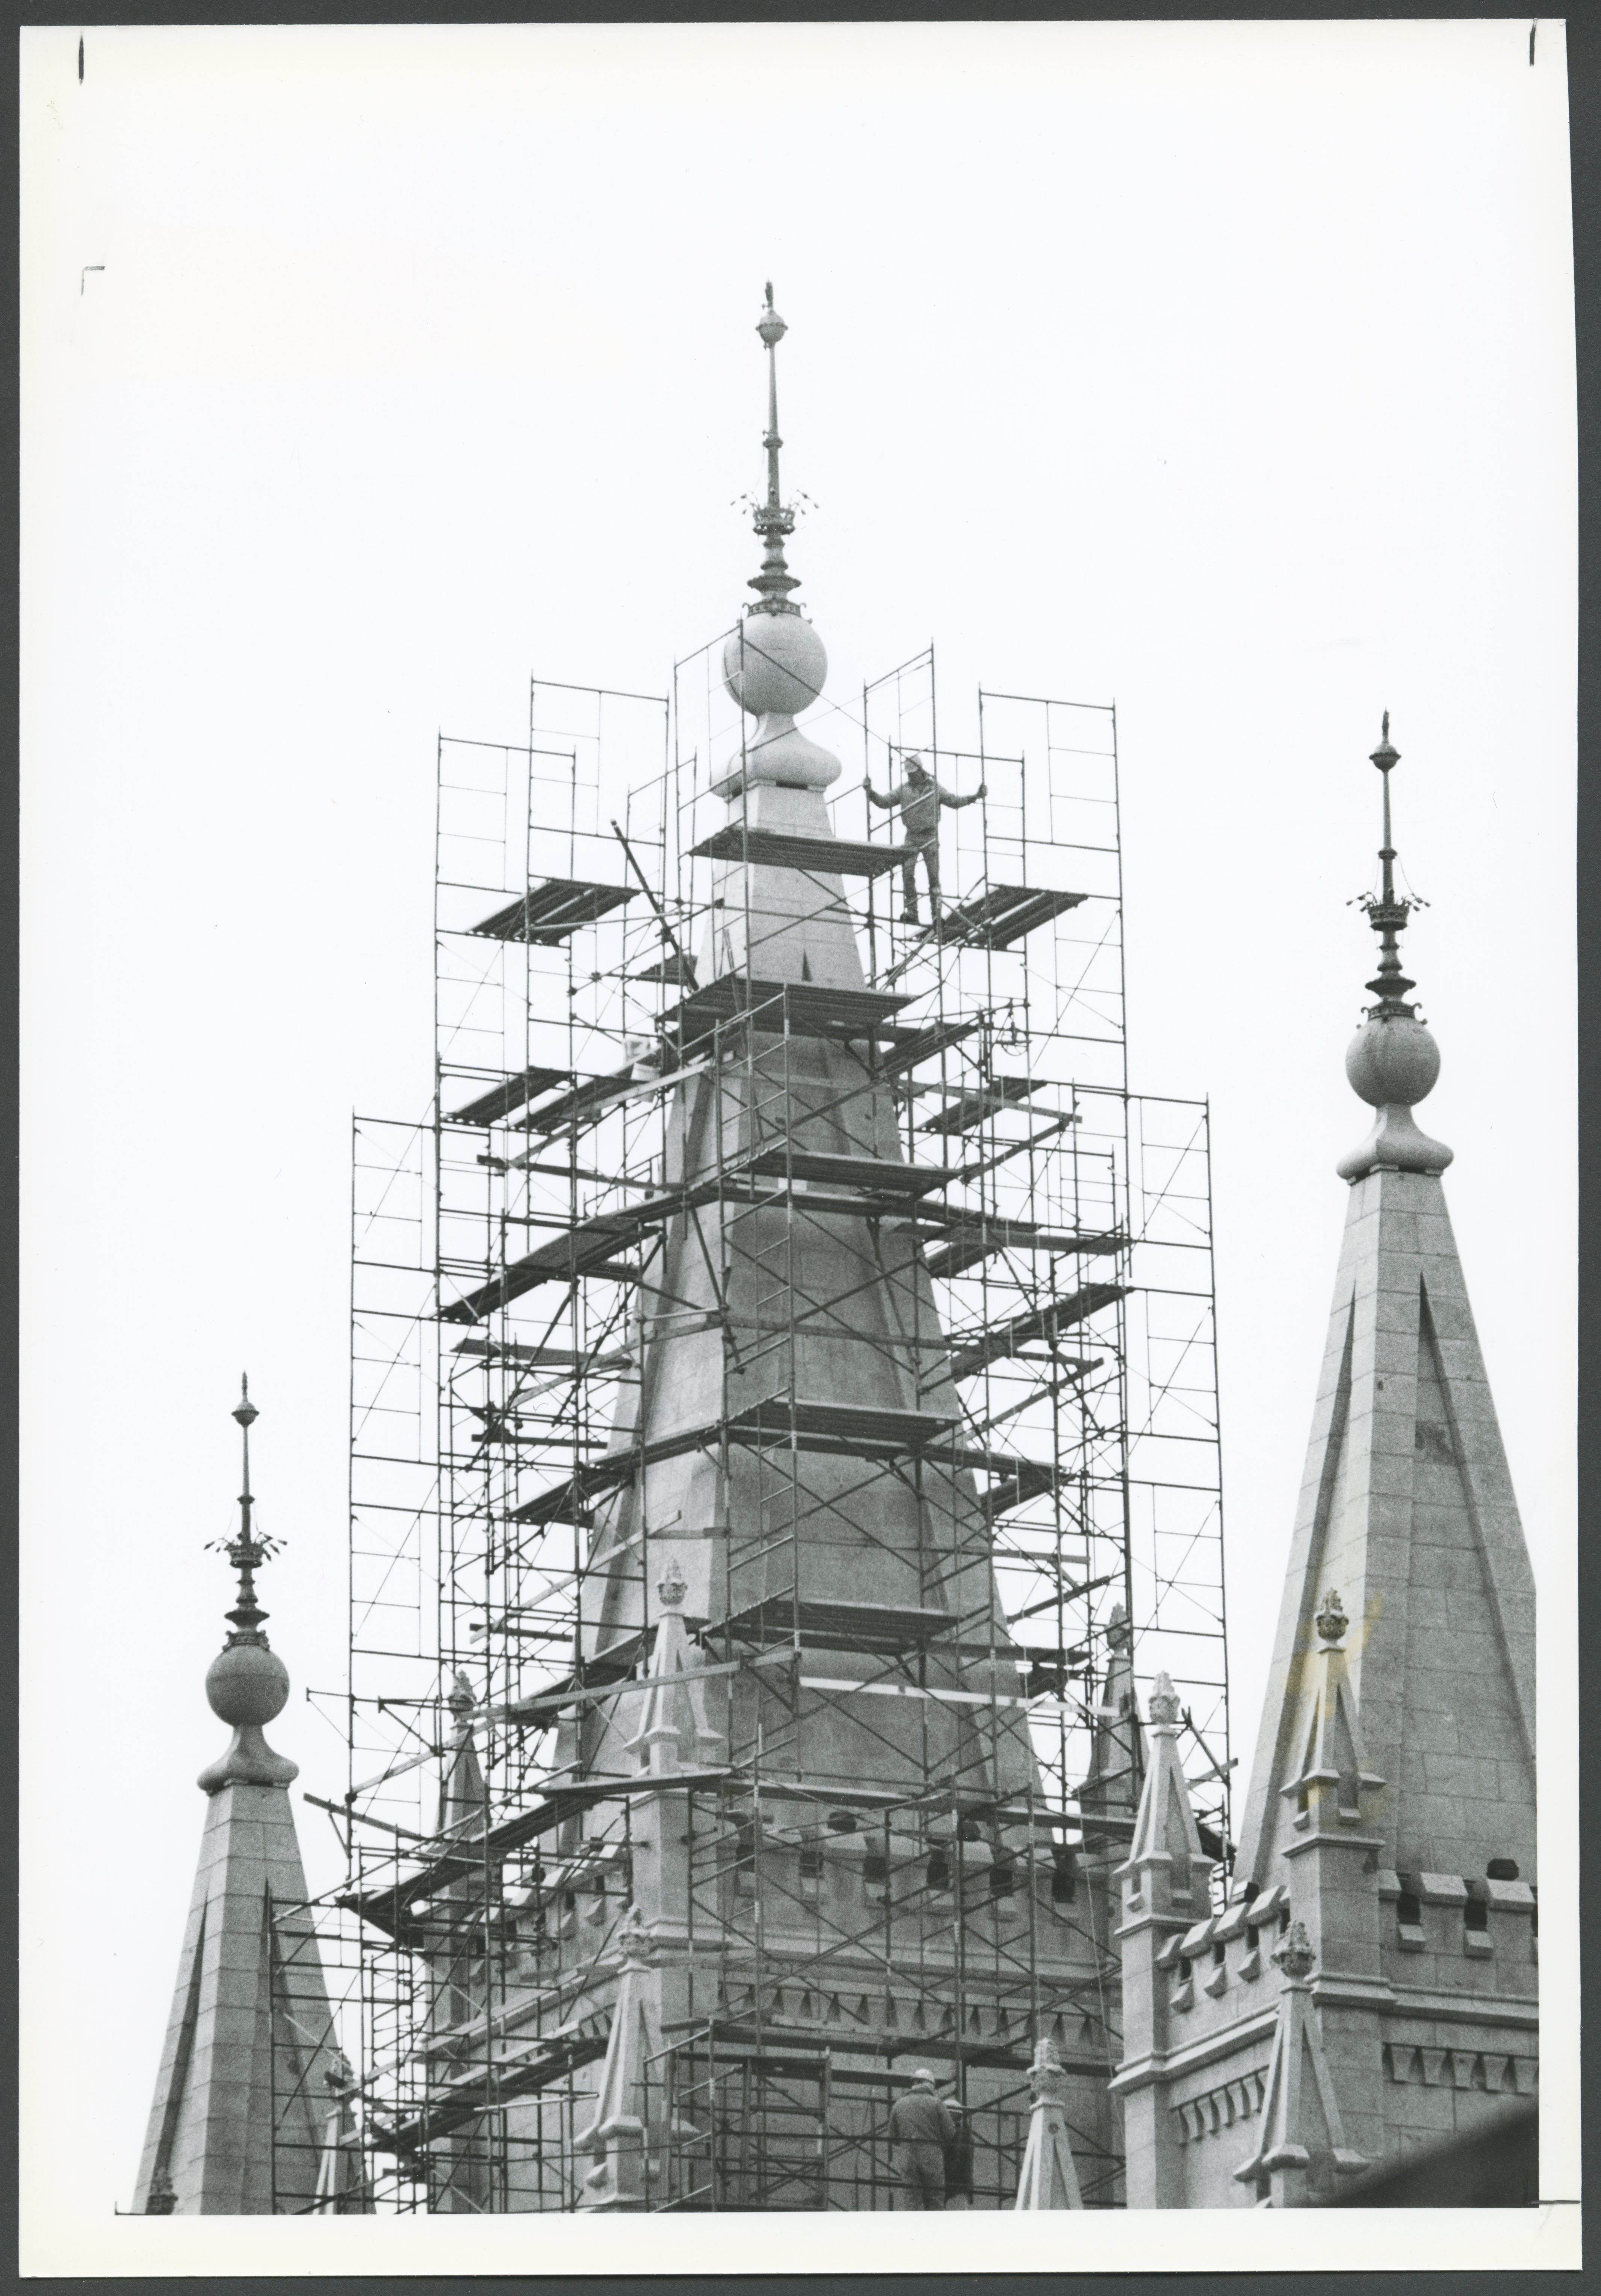 A worker scales the scaffolding of the Salt Lake Temple during its renovation.